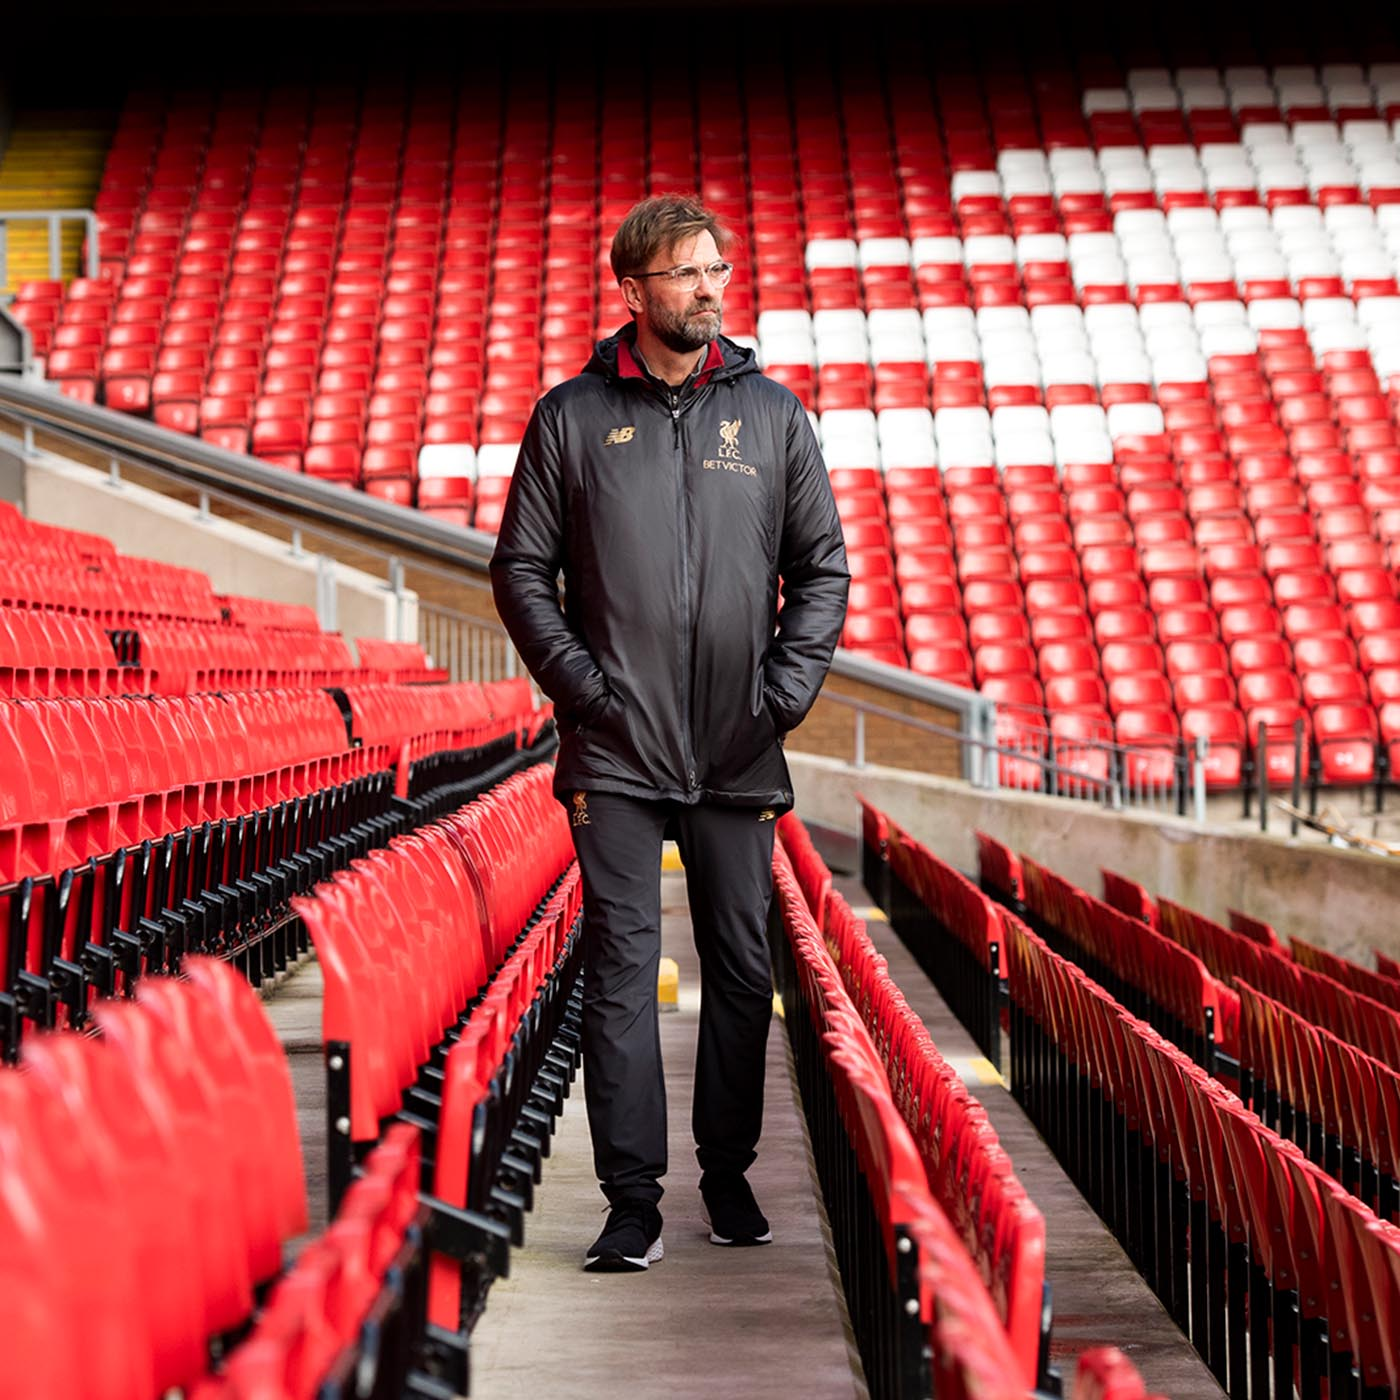 06056dab9 New Balance Liverpool Managers Collection Klopp body 0003 06.08.18 09.00  (3) FW18 Managers Collection